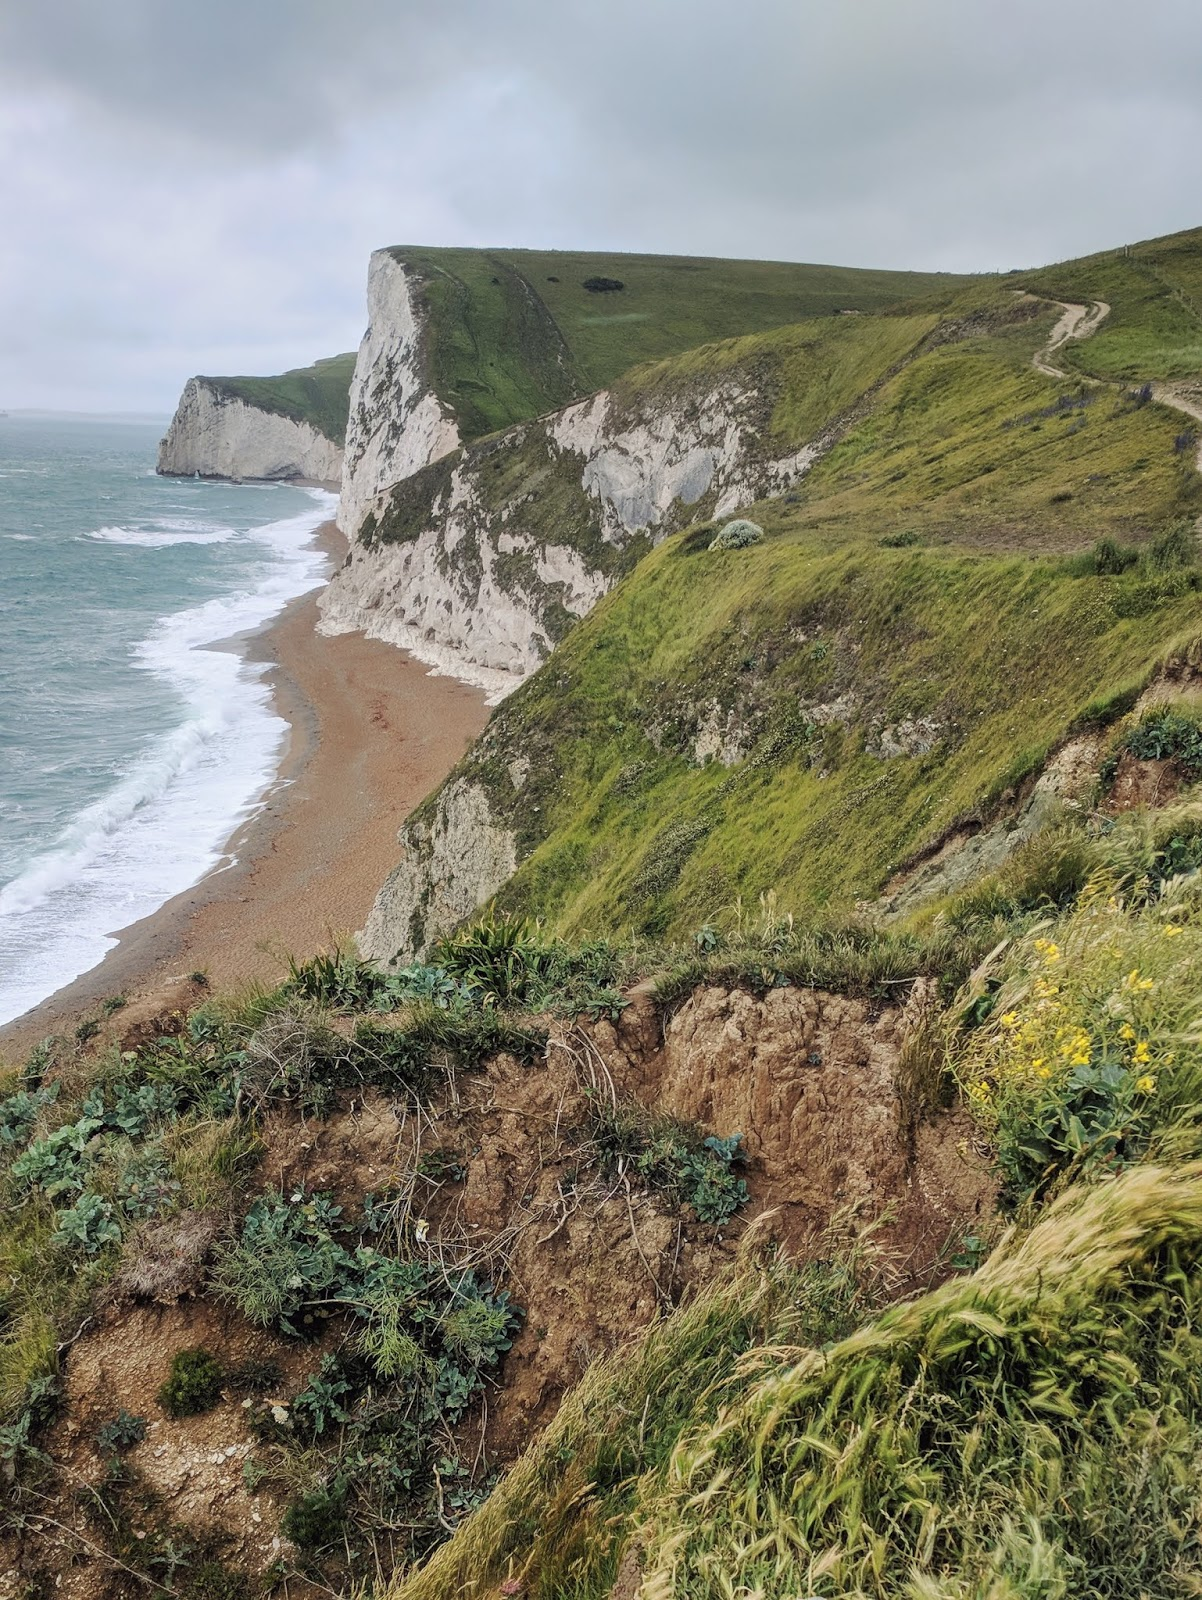 the lush grass lining the cliffs of Jurassic Coast